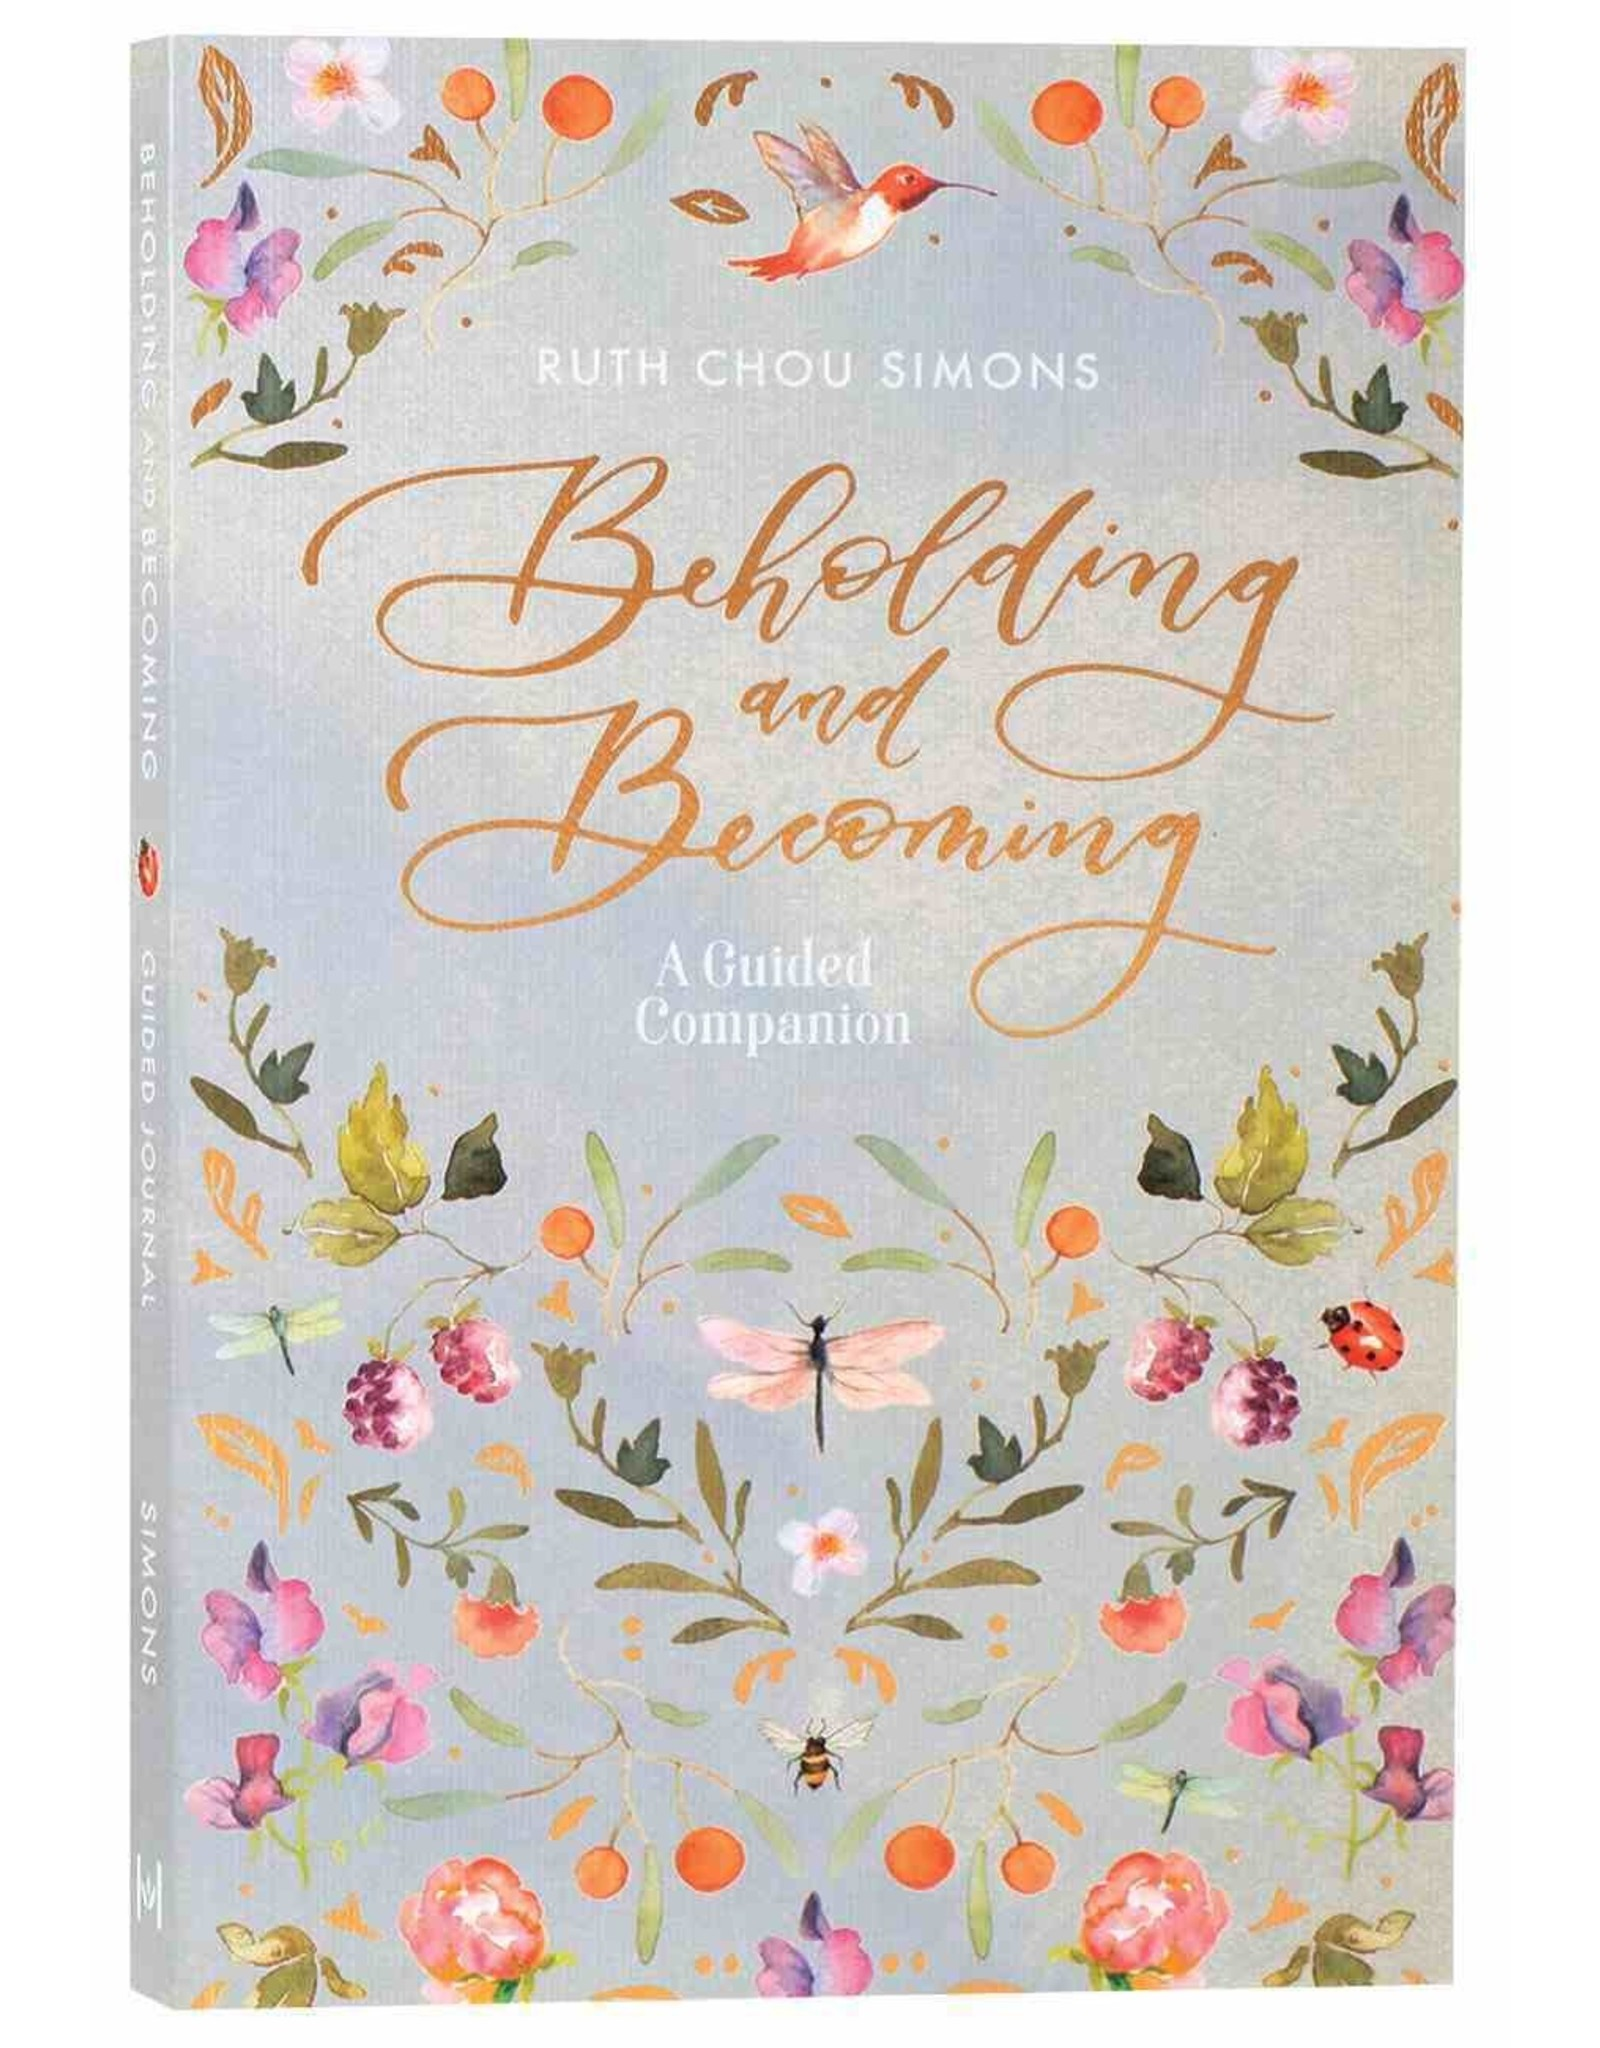 Ruth Chou Simons Beholding and Becoming - A guided companion